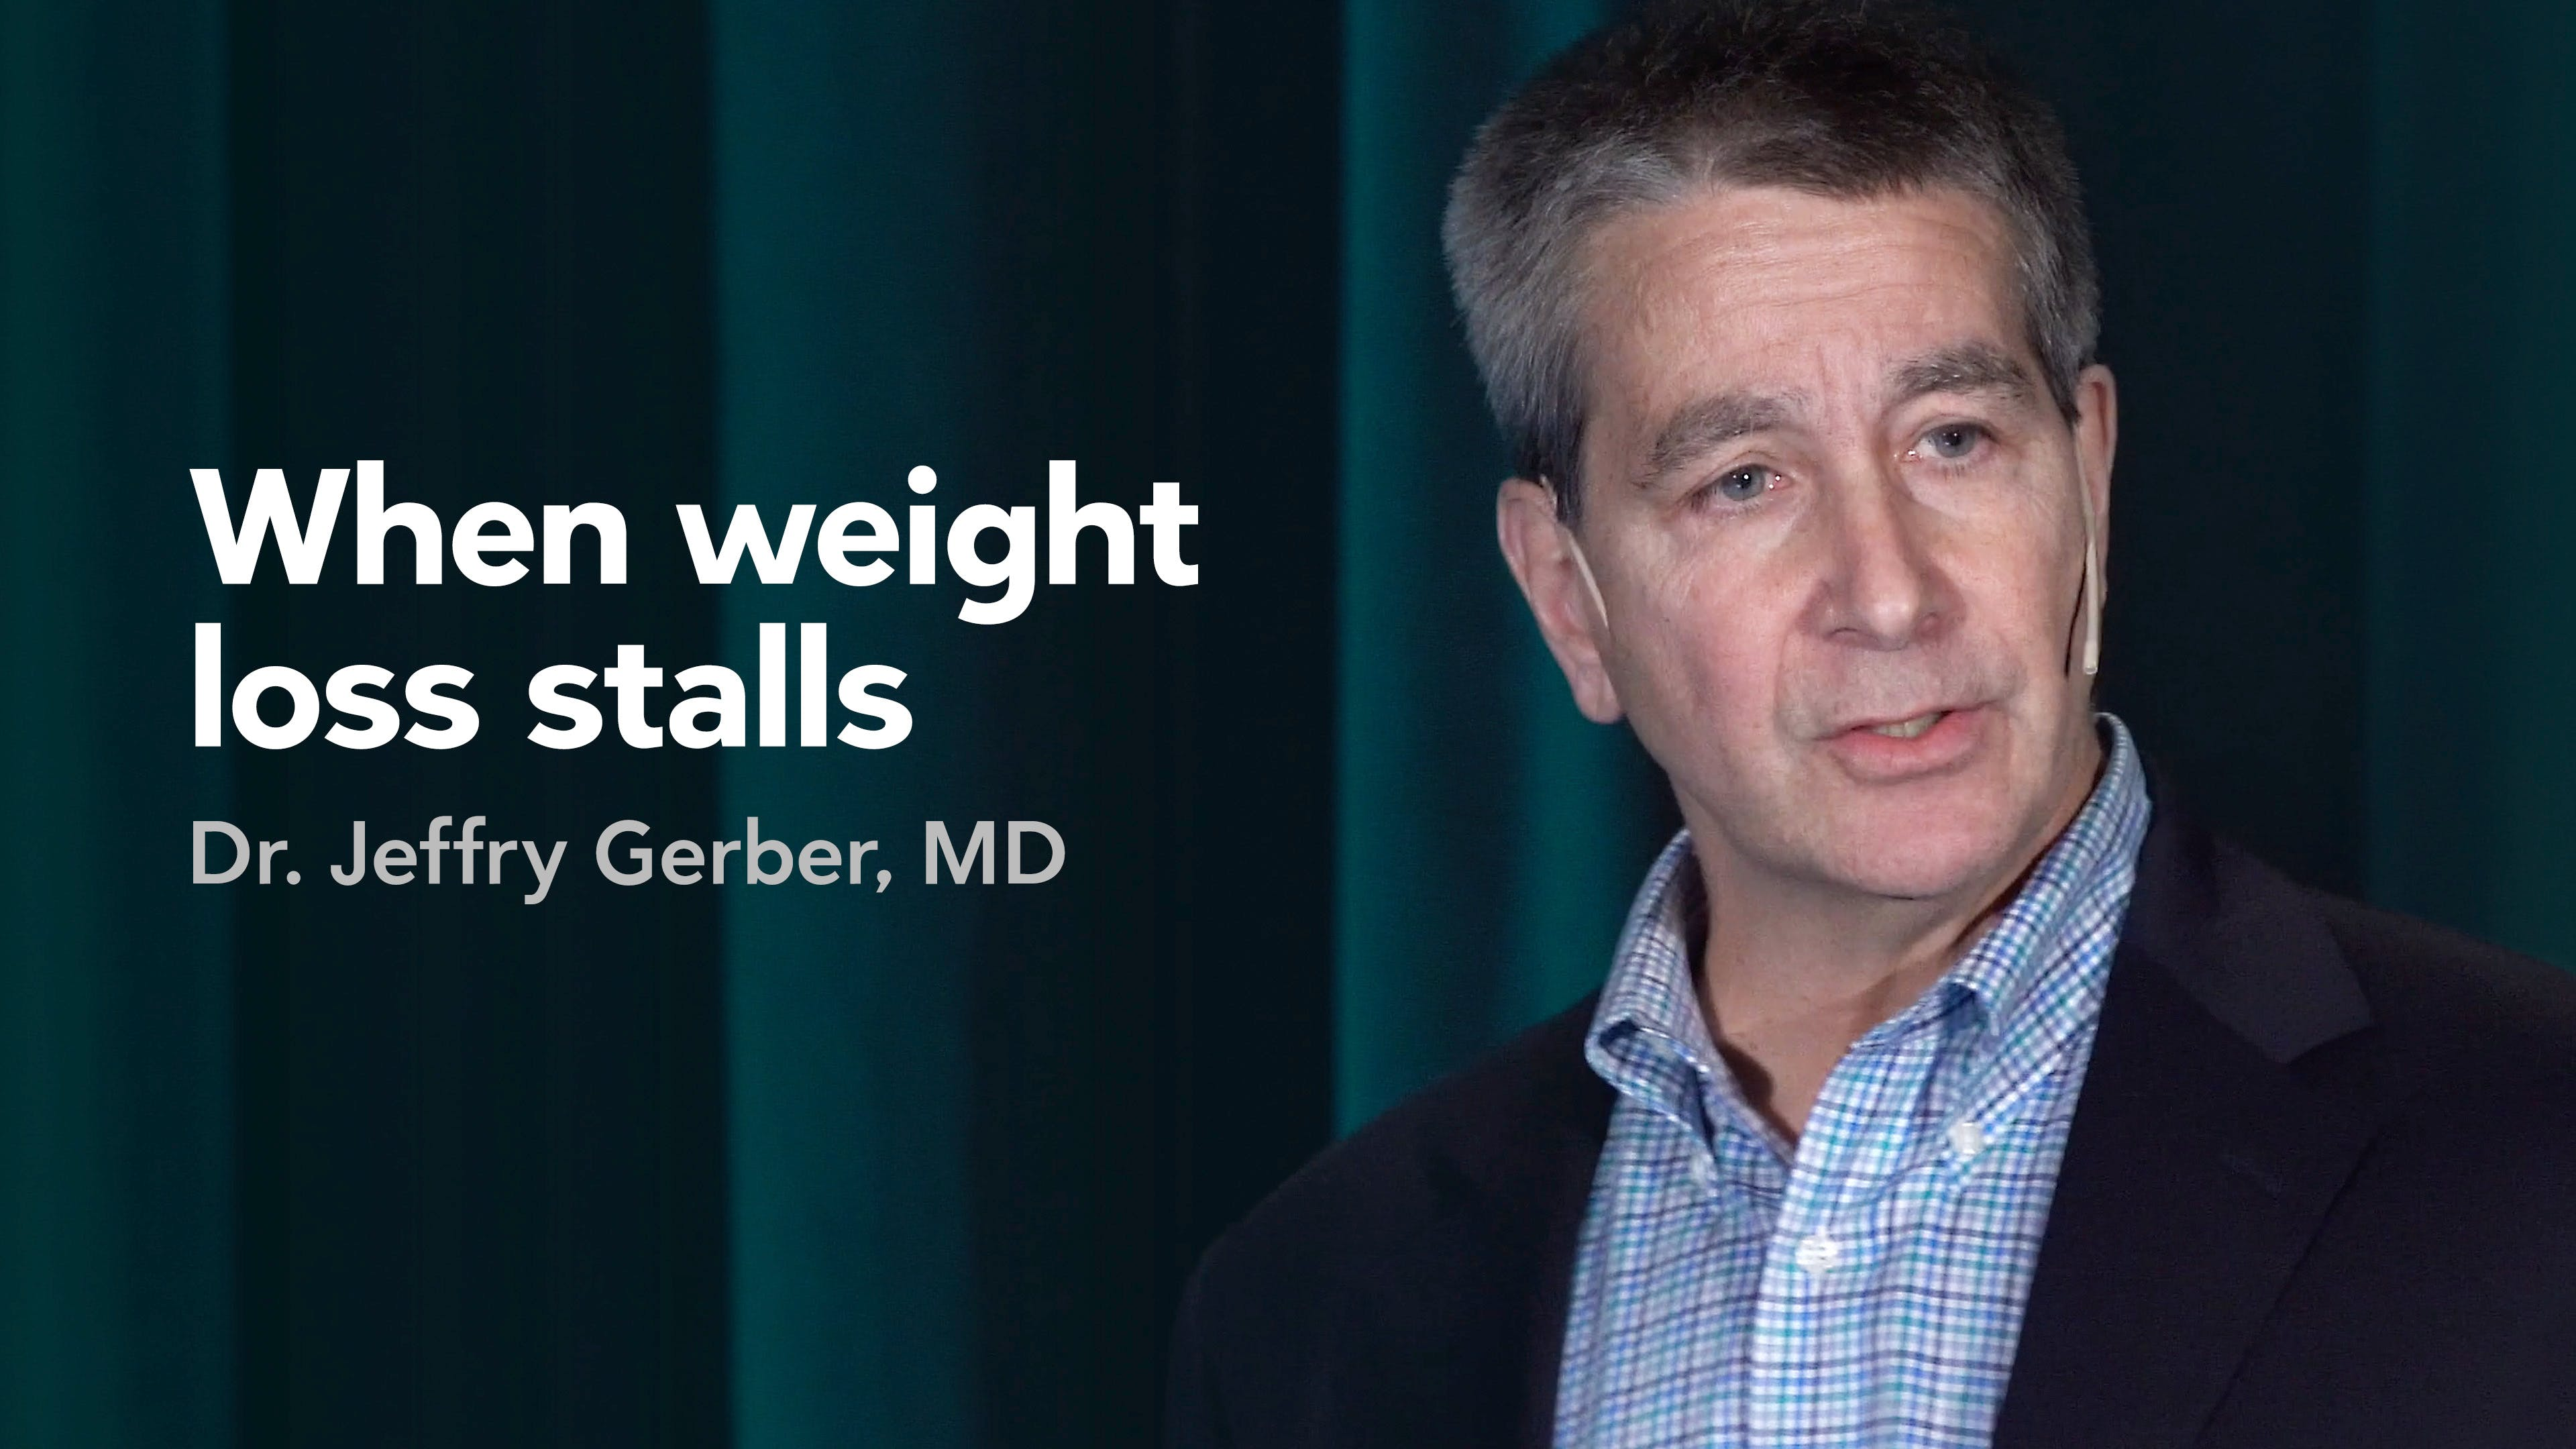 When weight loss stalls – Jeffry Gerber